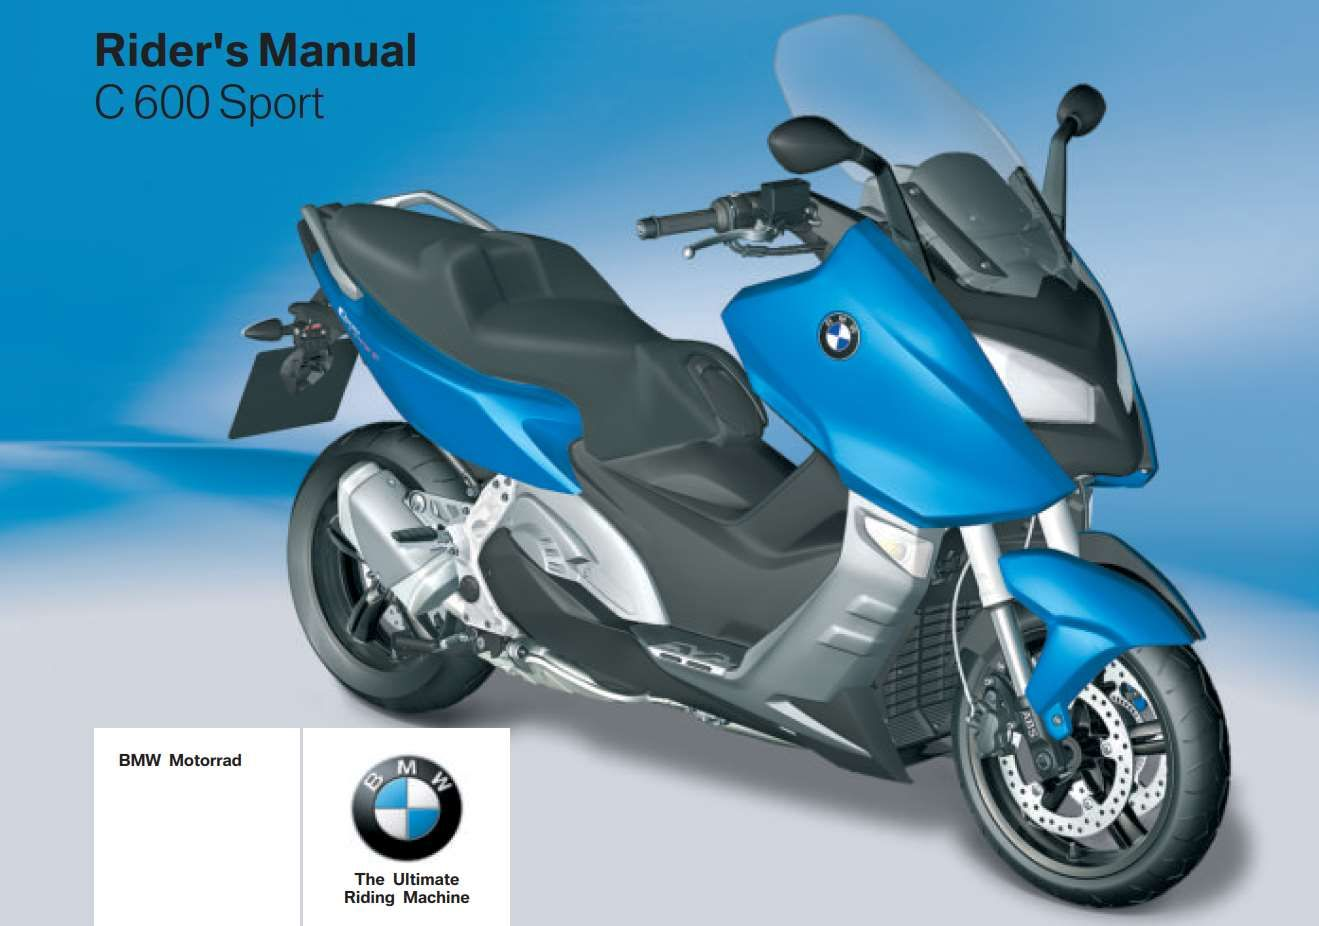 Bmw C 600 Sport 3rd 2012 Owner S Manual Has Been Published On Procarmanuals Com Https Procarmanuals Com Bmw C 600 Sport 3rd 2012 O Owners Manuals Sport 2 Bmw